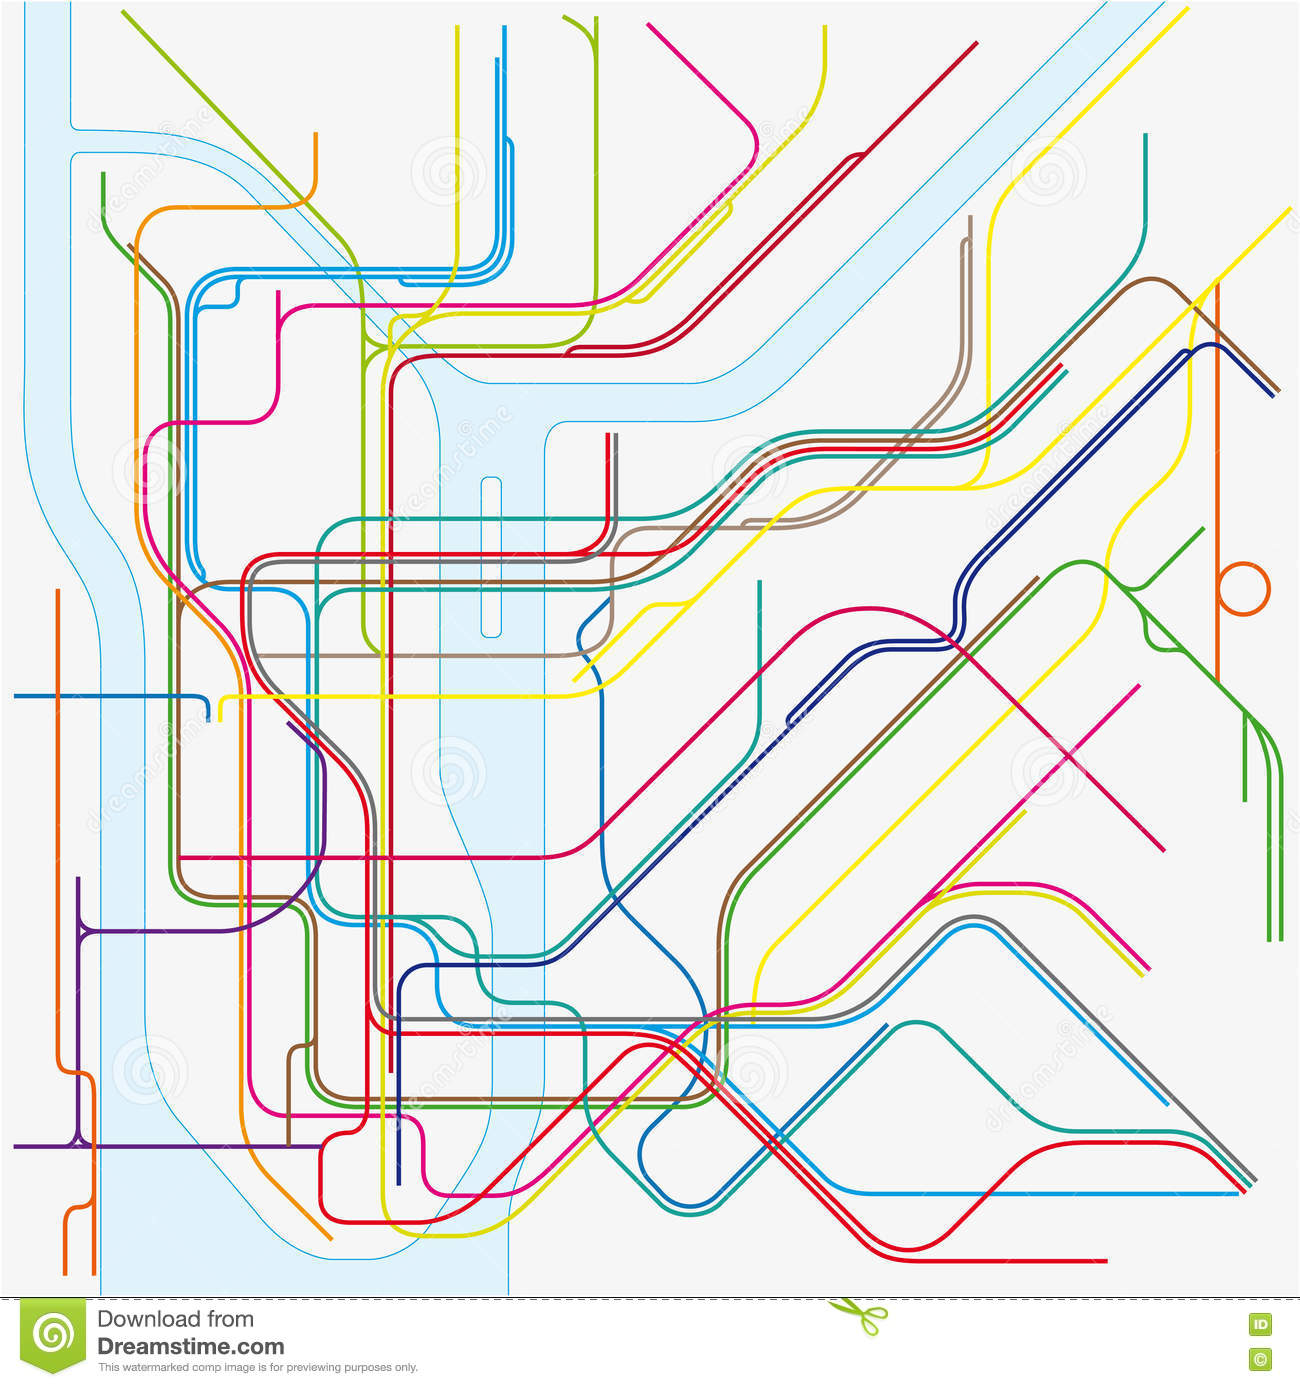 Download New York Subway Map.Subway Vector Map Of New York City Stock Illustration Illustration